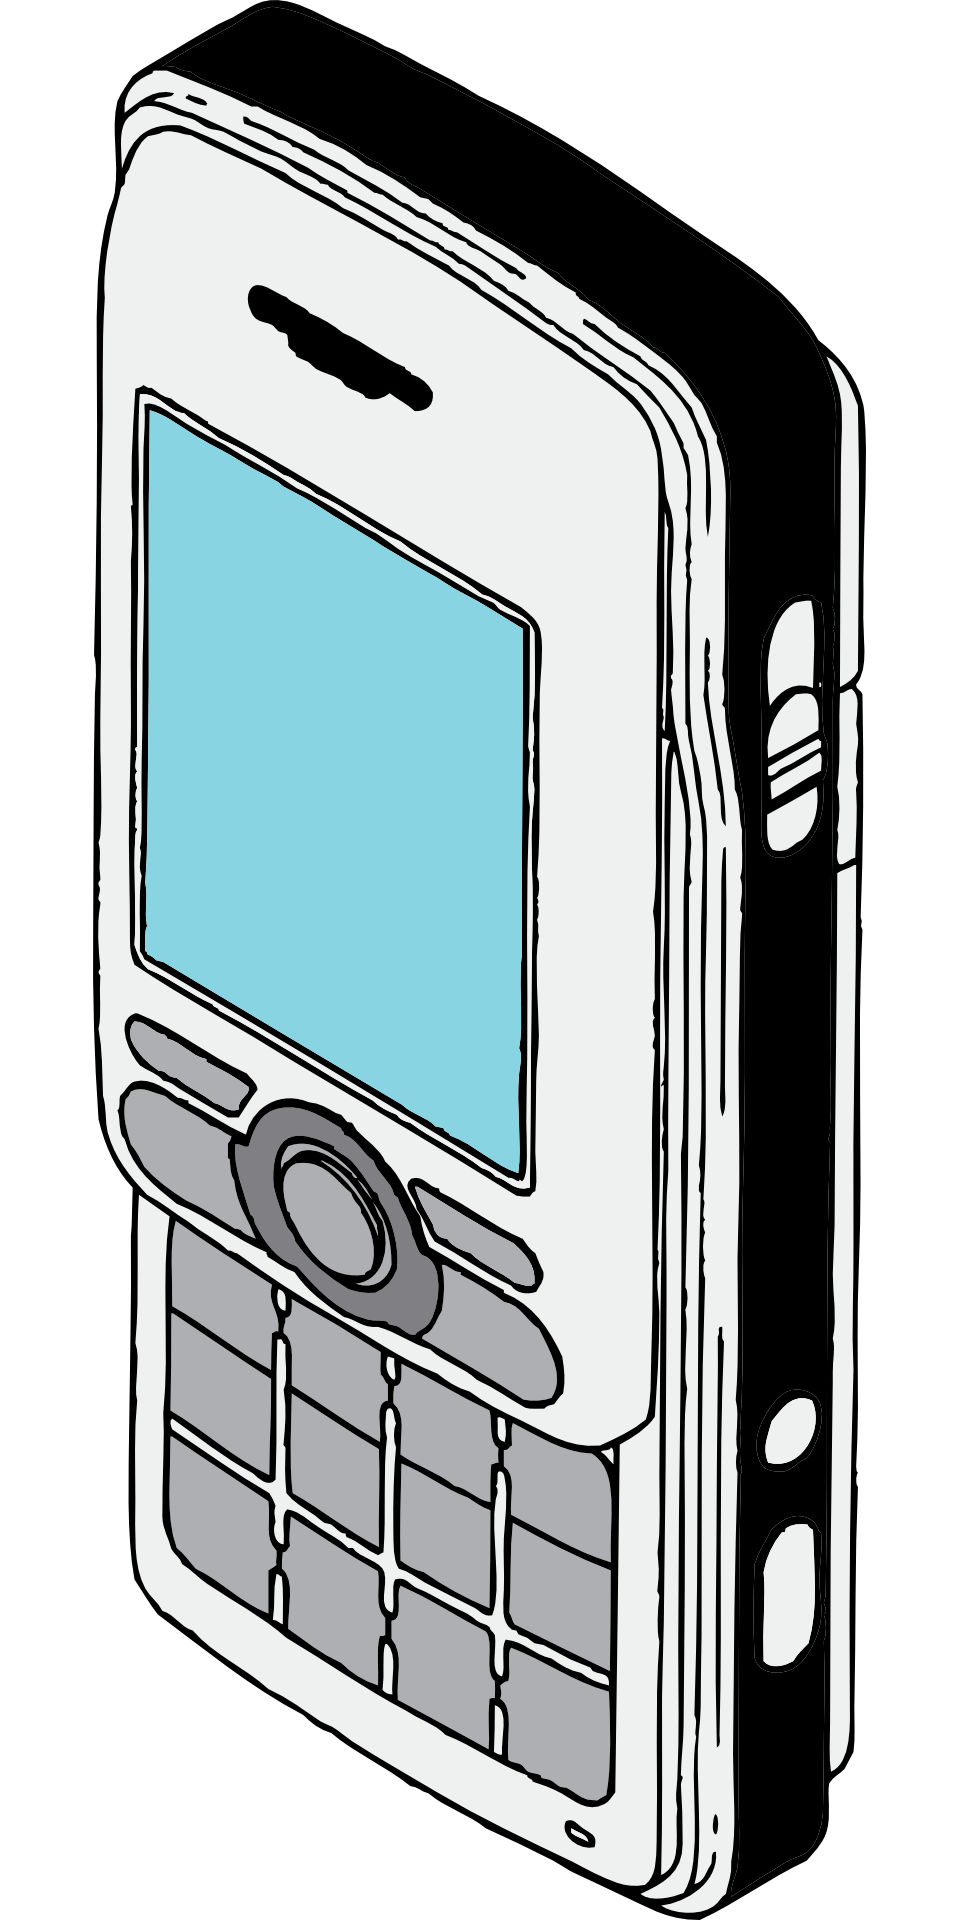 Drawing technology communication. Cellphone retro mobile phone